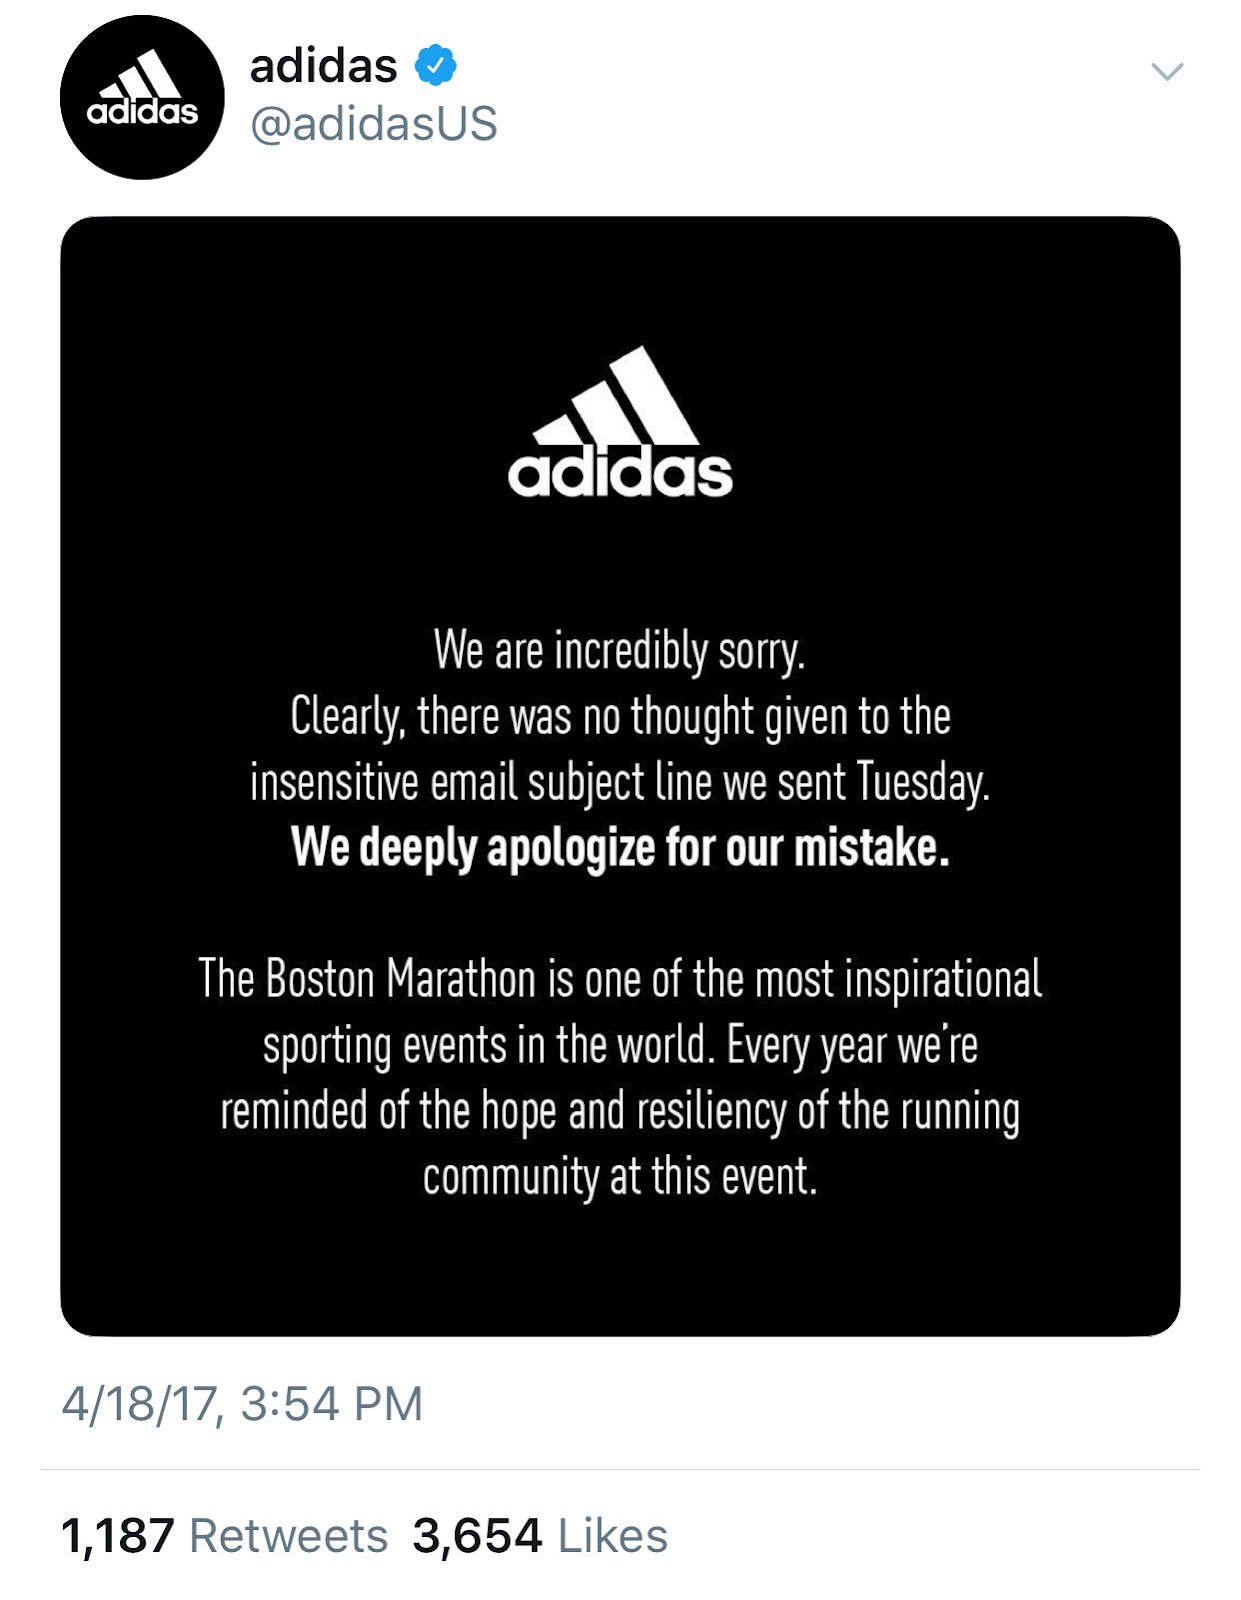 Adidas apologizing to customers on social media for insensitive email subject line.